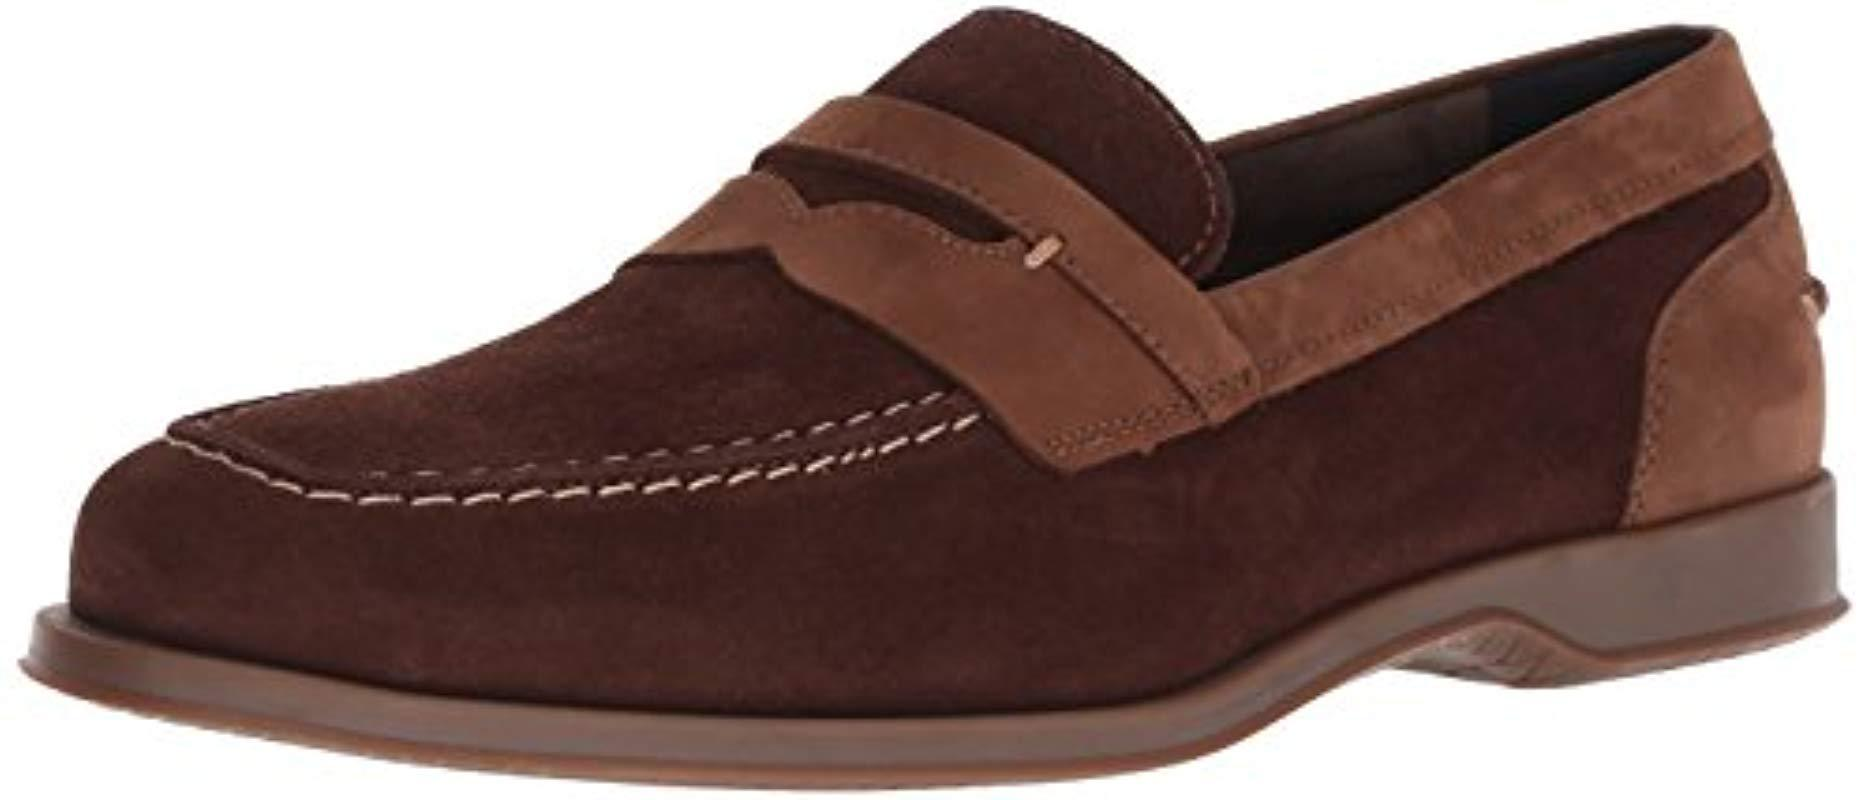 39f26741db4 Lyst - Cole Haan Fleming Penny Loafer in Brown for Men - Save 25%